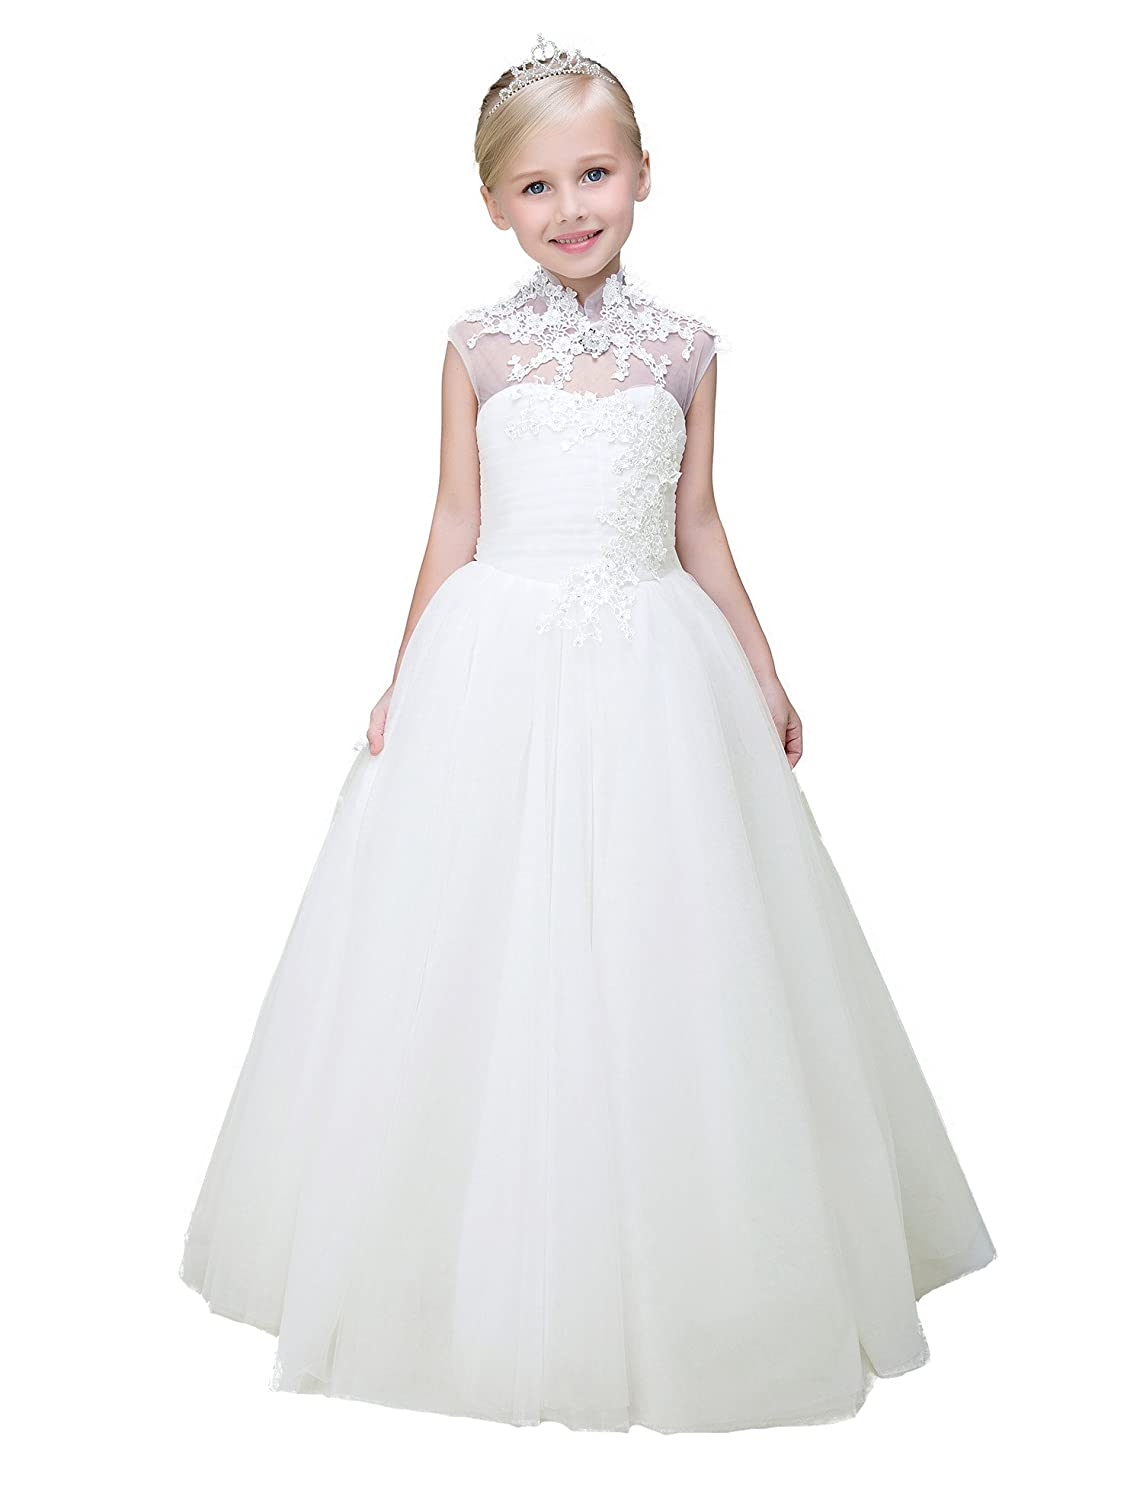 197f0f810 Amazon.com  Yuanlu Flower Girl Dress Lace Floor Length Communion ...